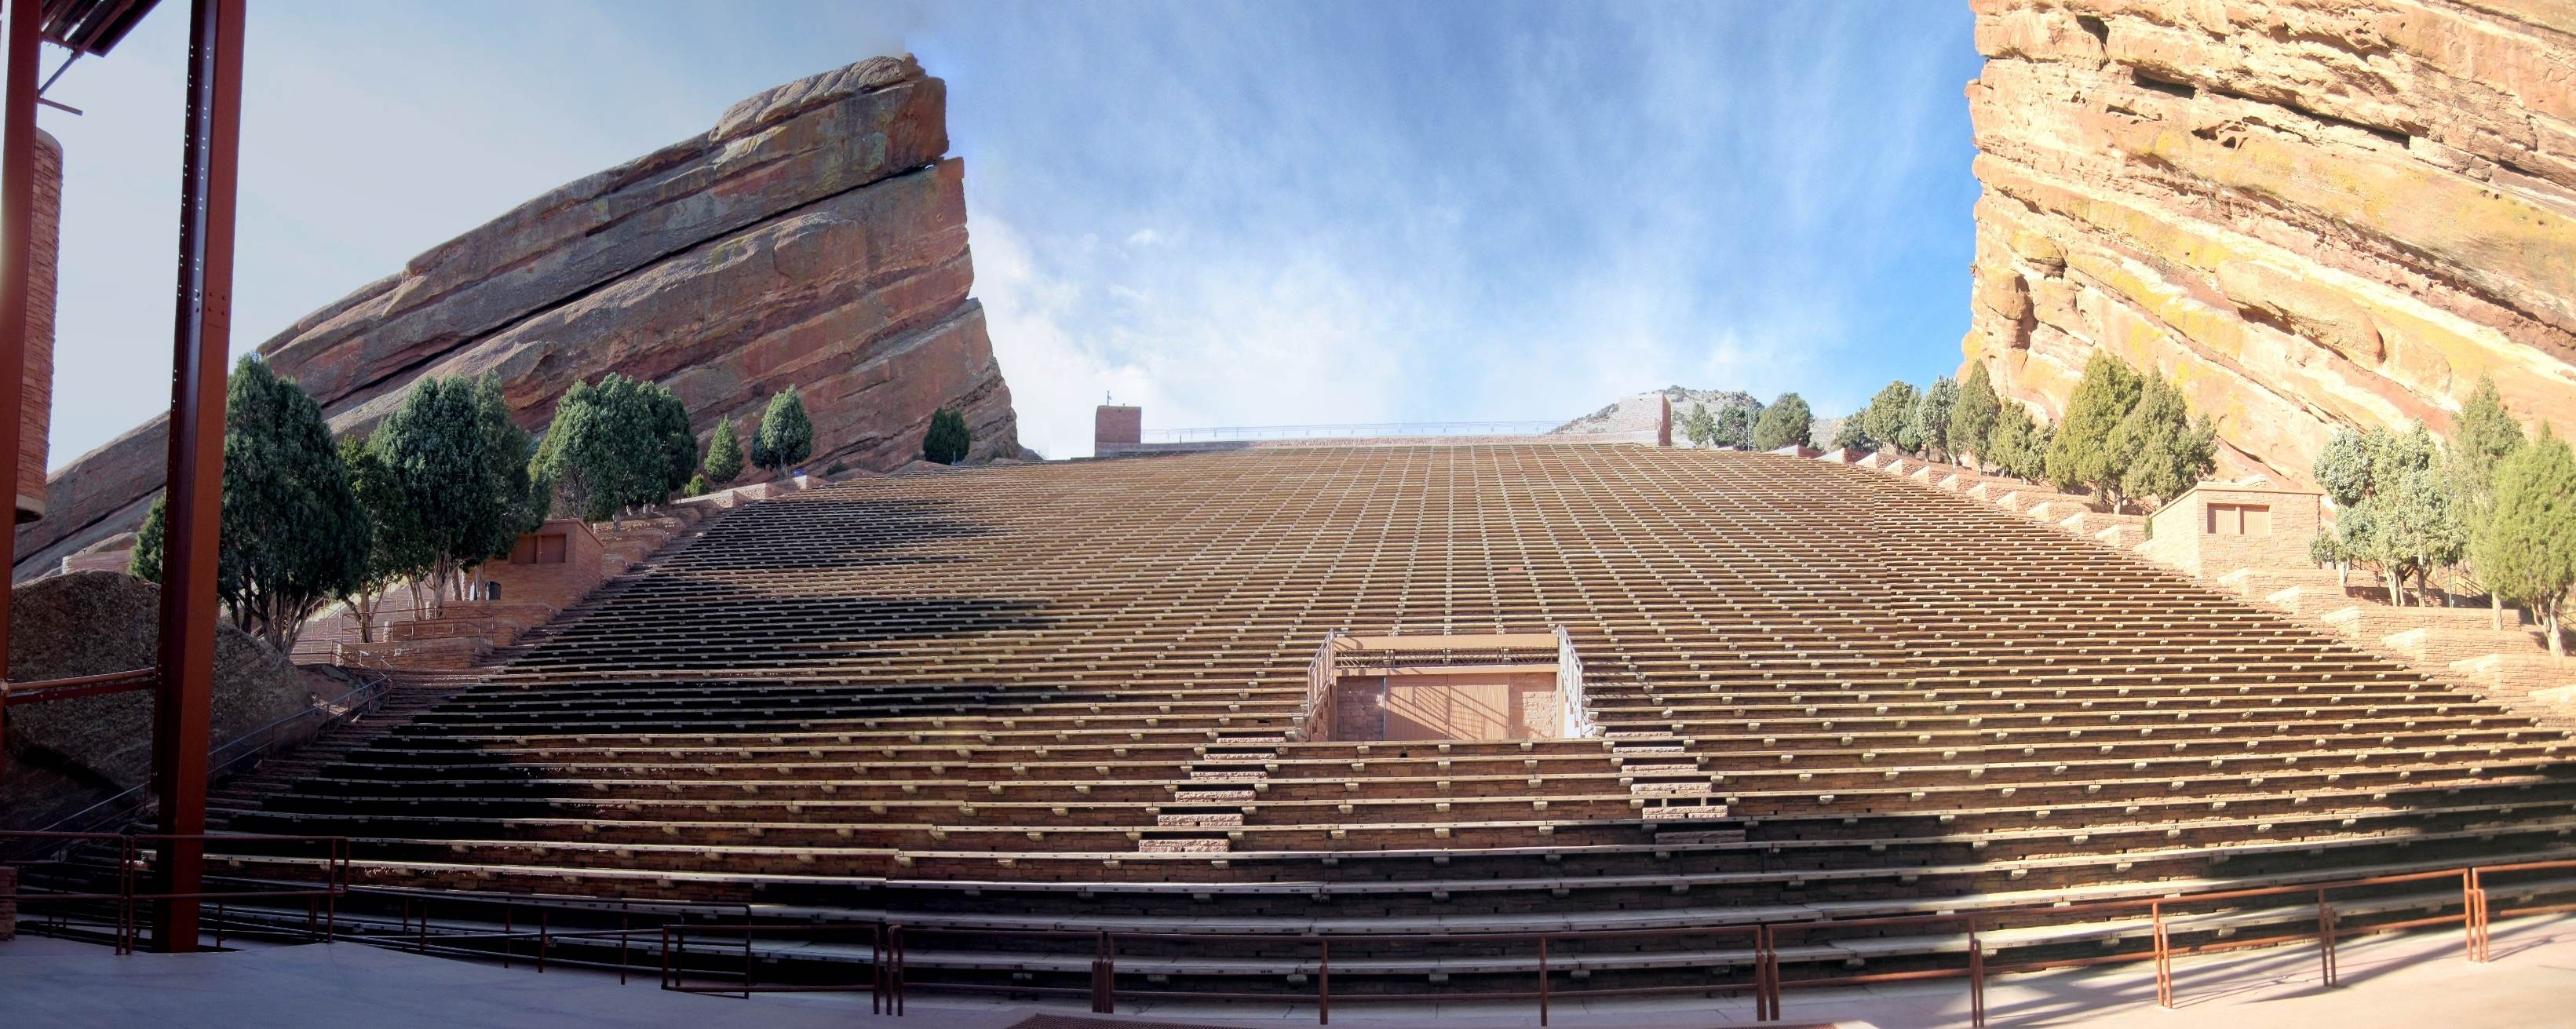 Red Rocks Amphitheater America S Best Concert Venue